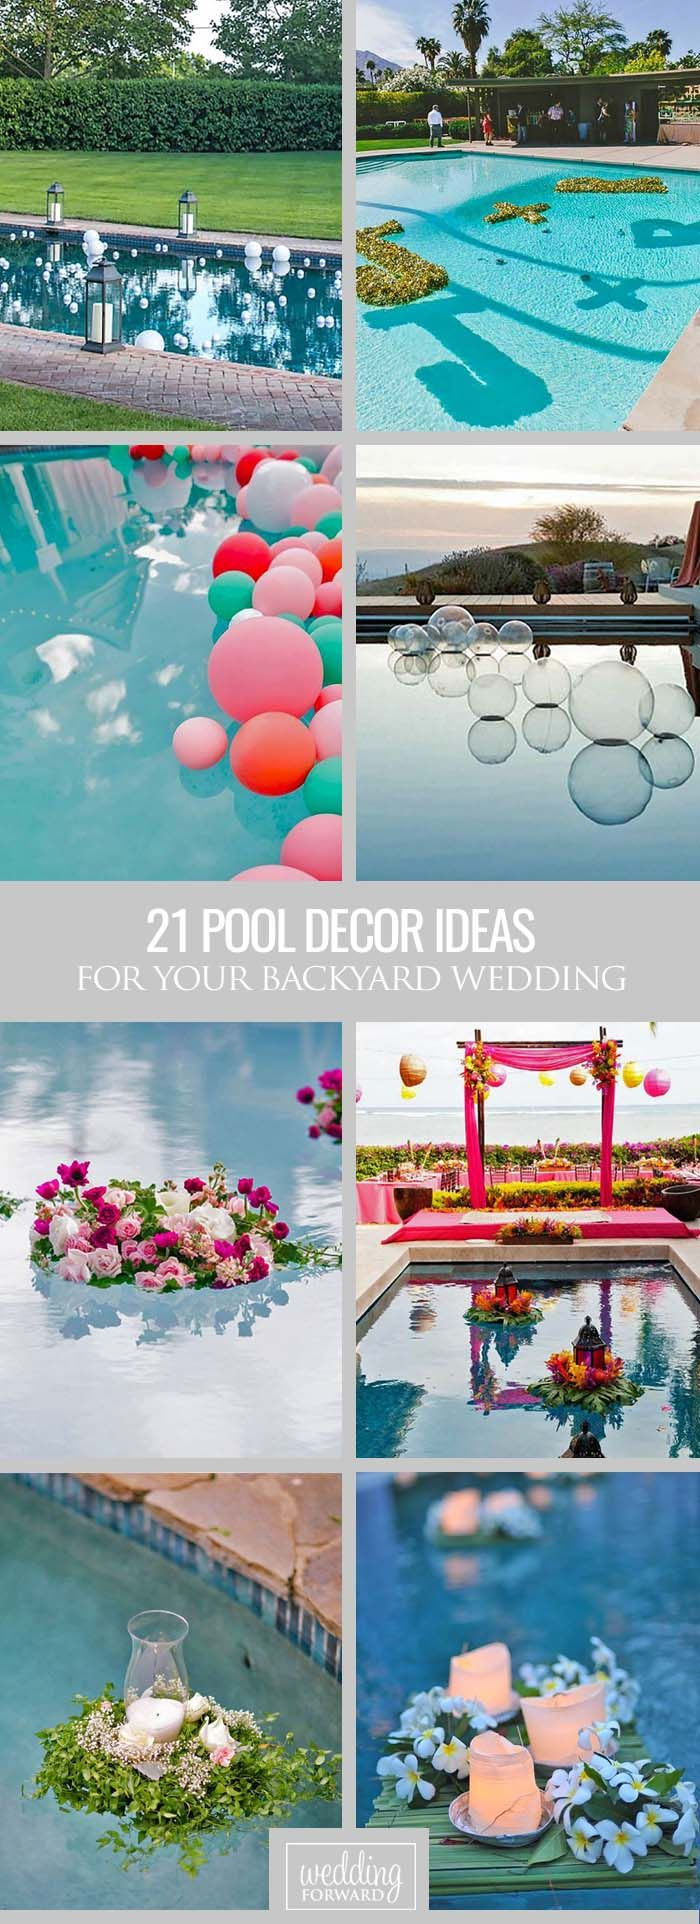 21 Wedding Pool Party Decoration Ideas For Your Backyard Wedding Wedding Pool Party Pool Wedding Decorations Pool Wedding